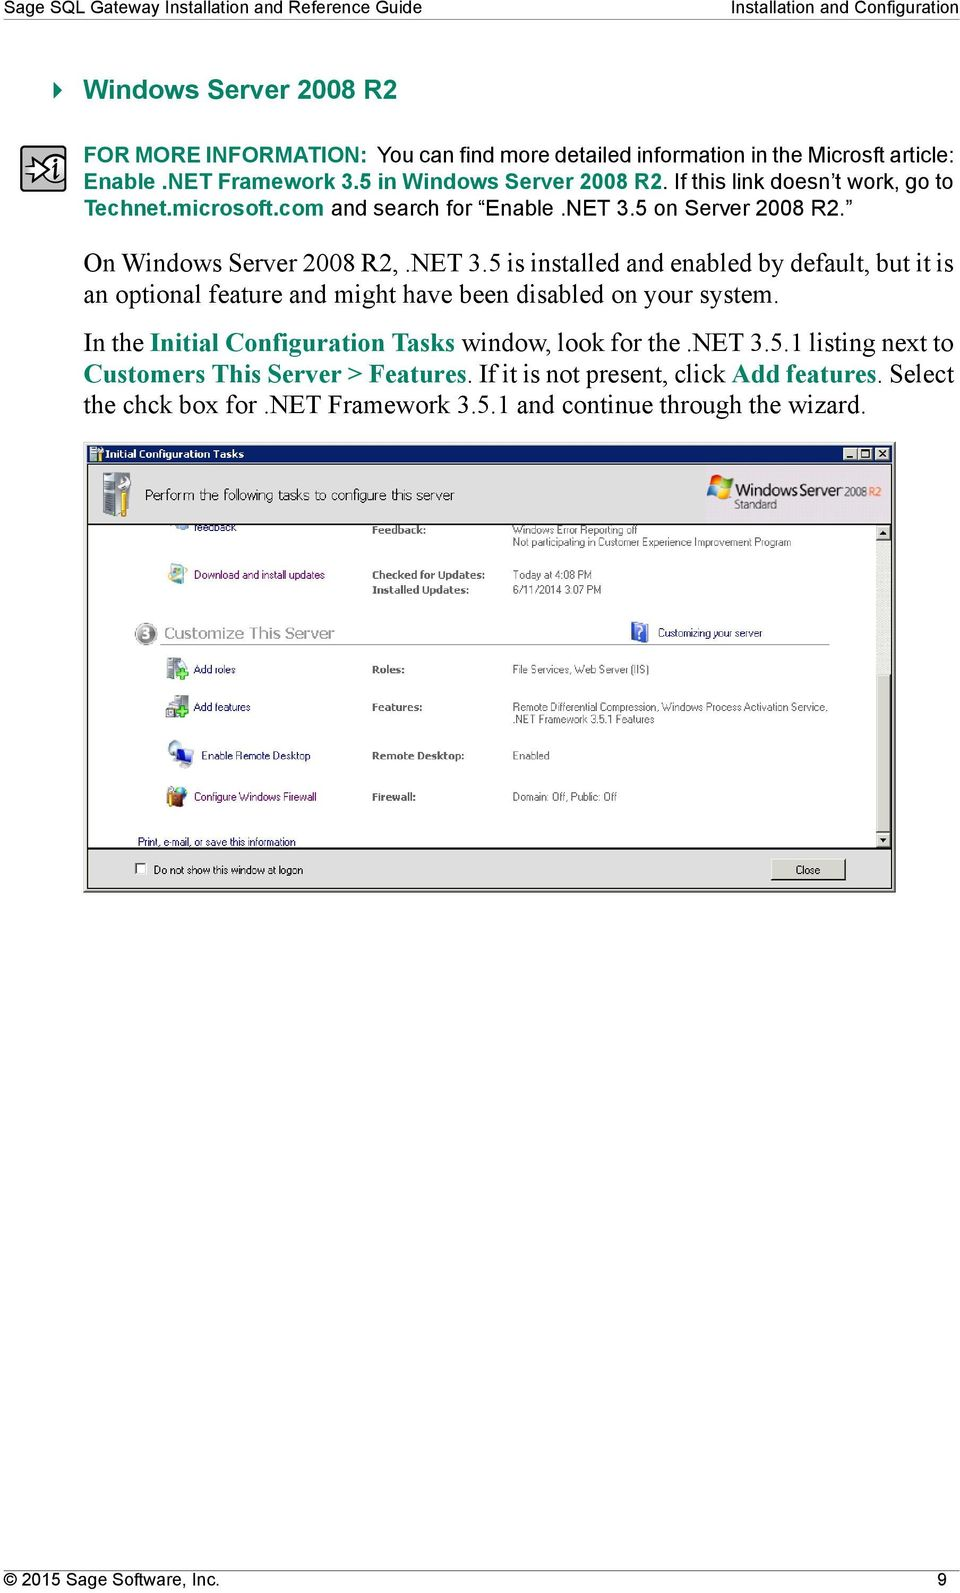 On Windows Server 2008 R2,.NET 3.5 is installed and enabled by default, but it is an optional feature and might have been disabled on your system.